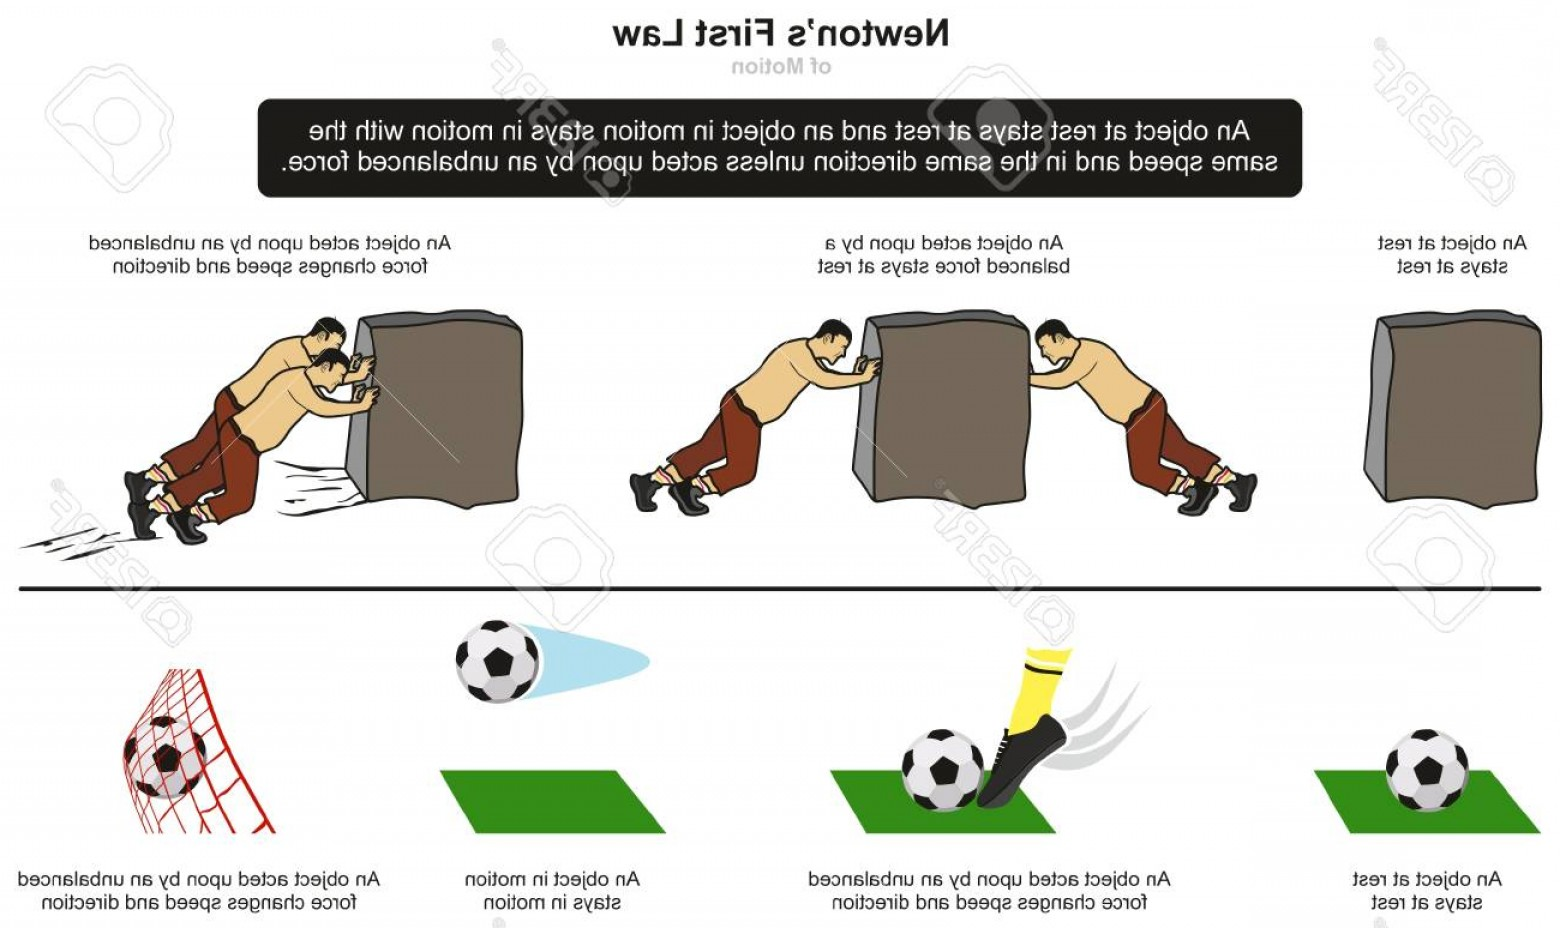 Example Of Vectors Images Movement: Photostock Vector Newtones First Law Of Motion Infographic Diagram With Examples Of Stone And Football At Rest And Whe